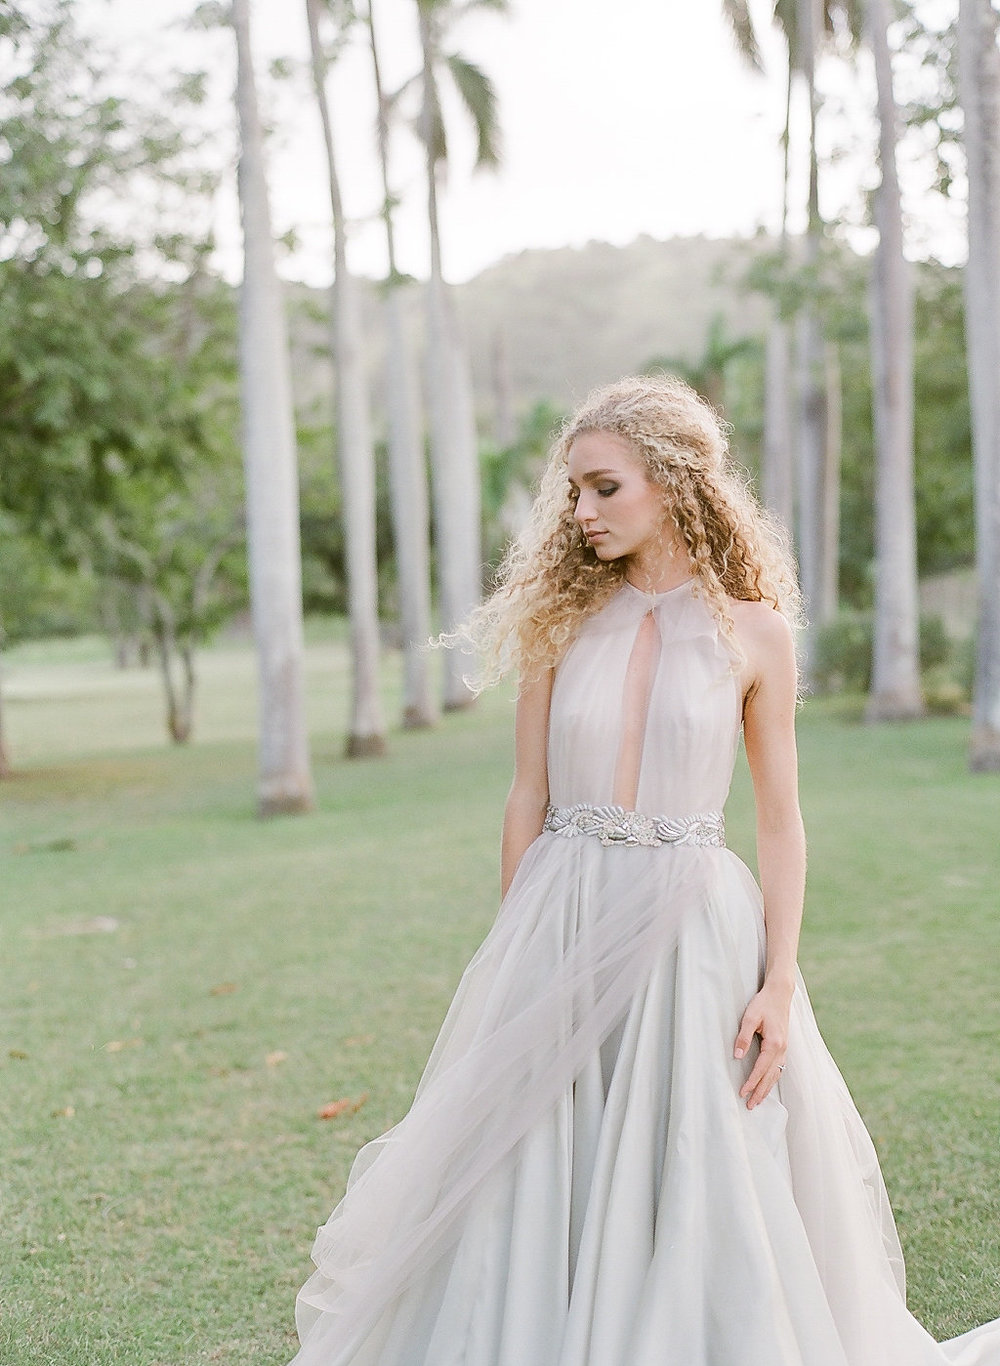 light gray tulle draped halter neck wedding dress ny designer bridal shop2-149.jpg